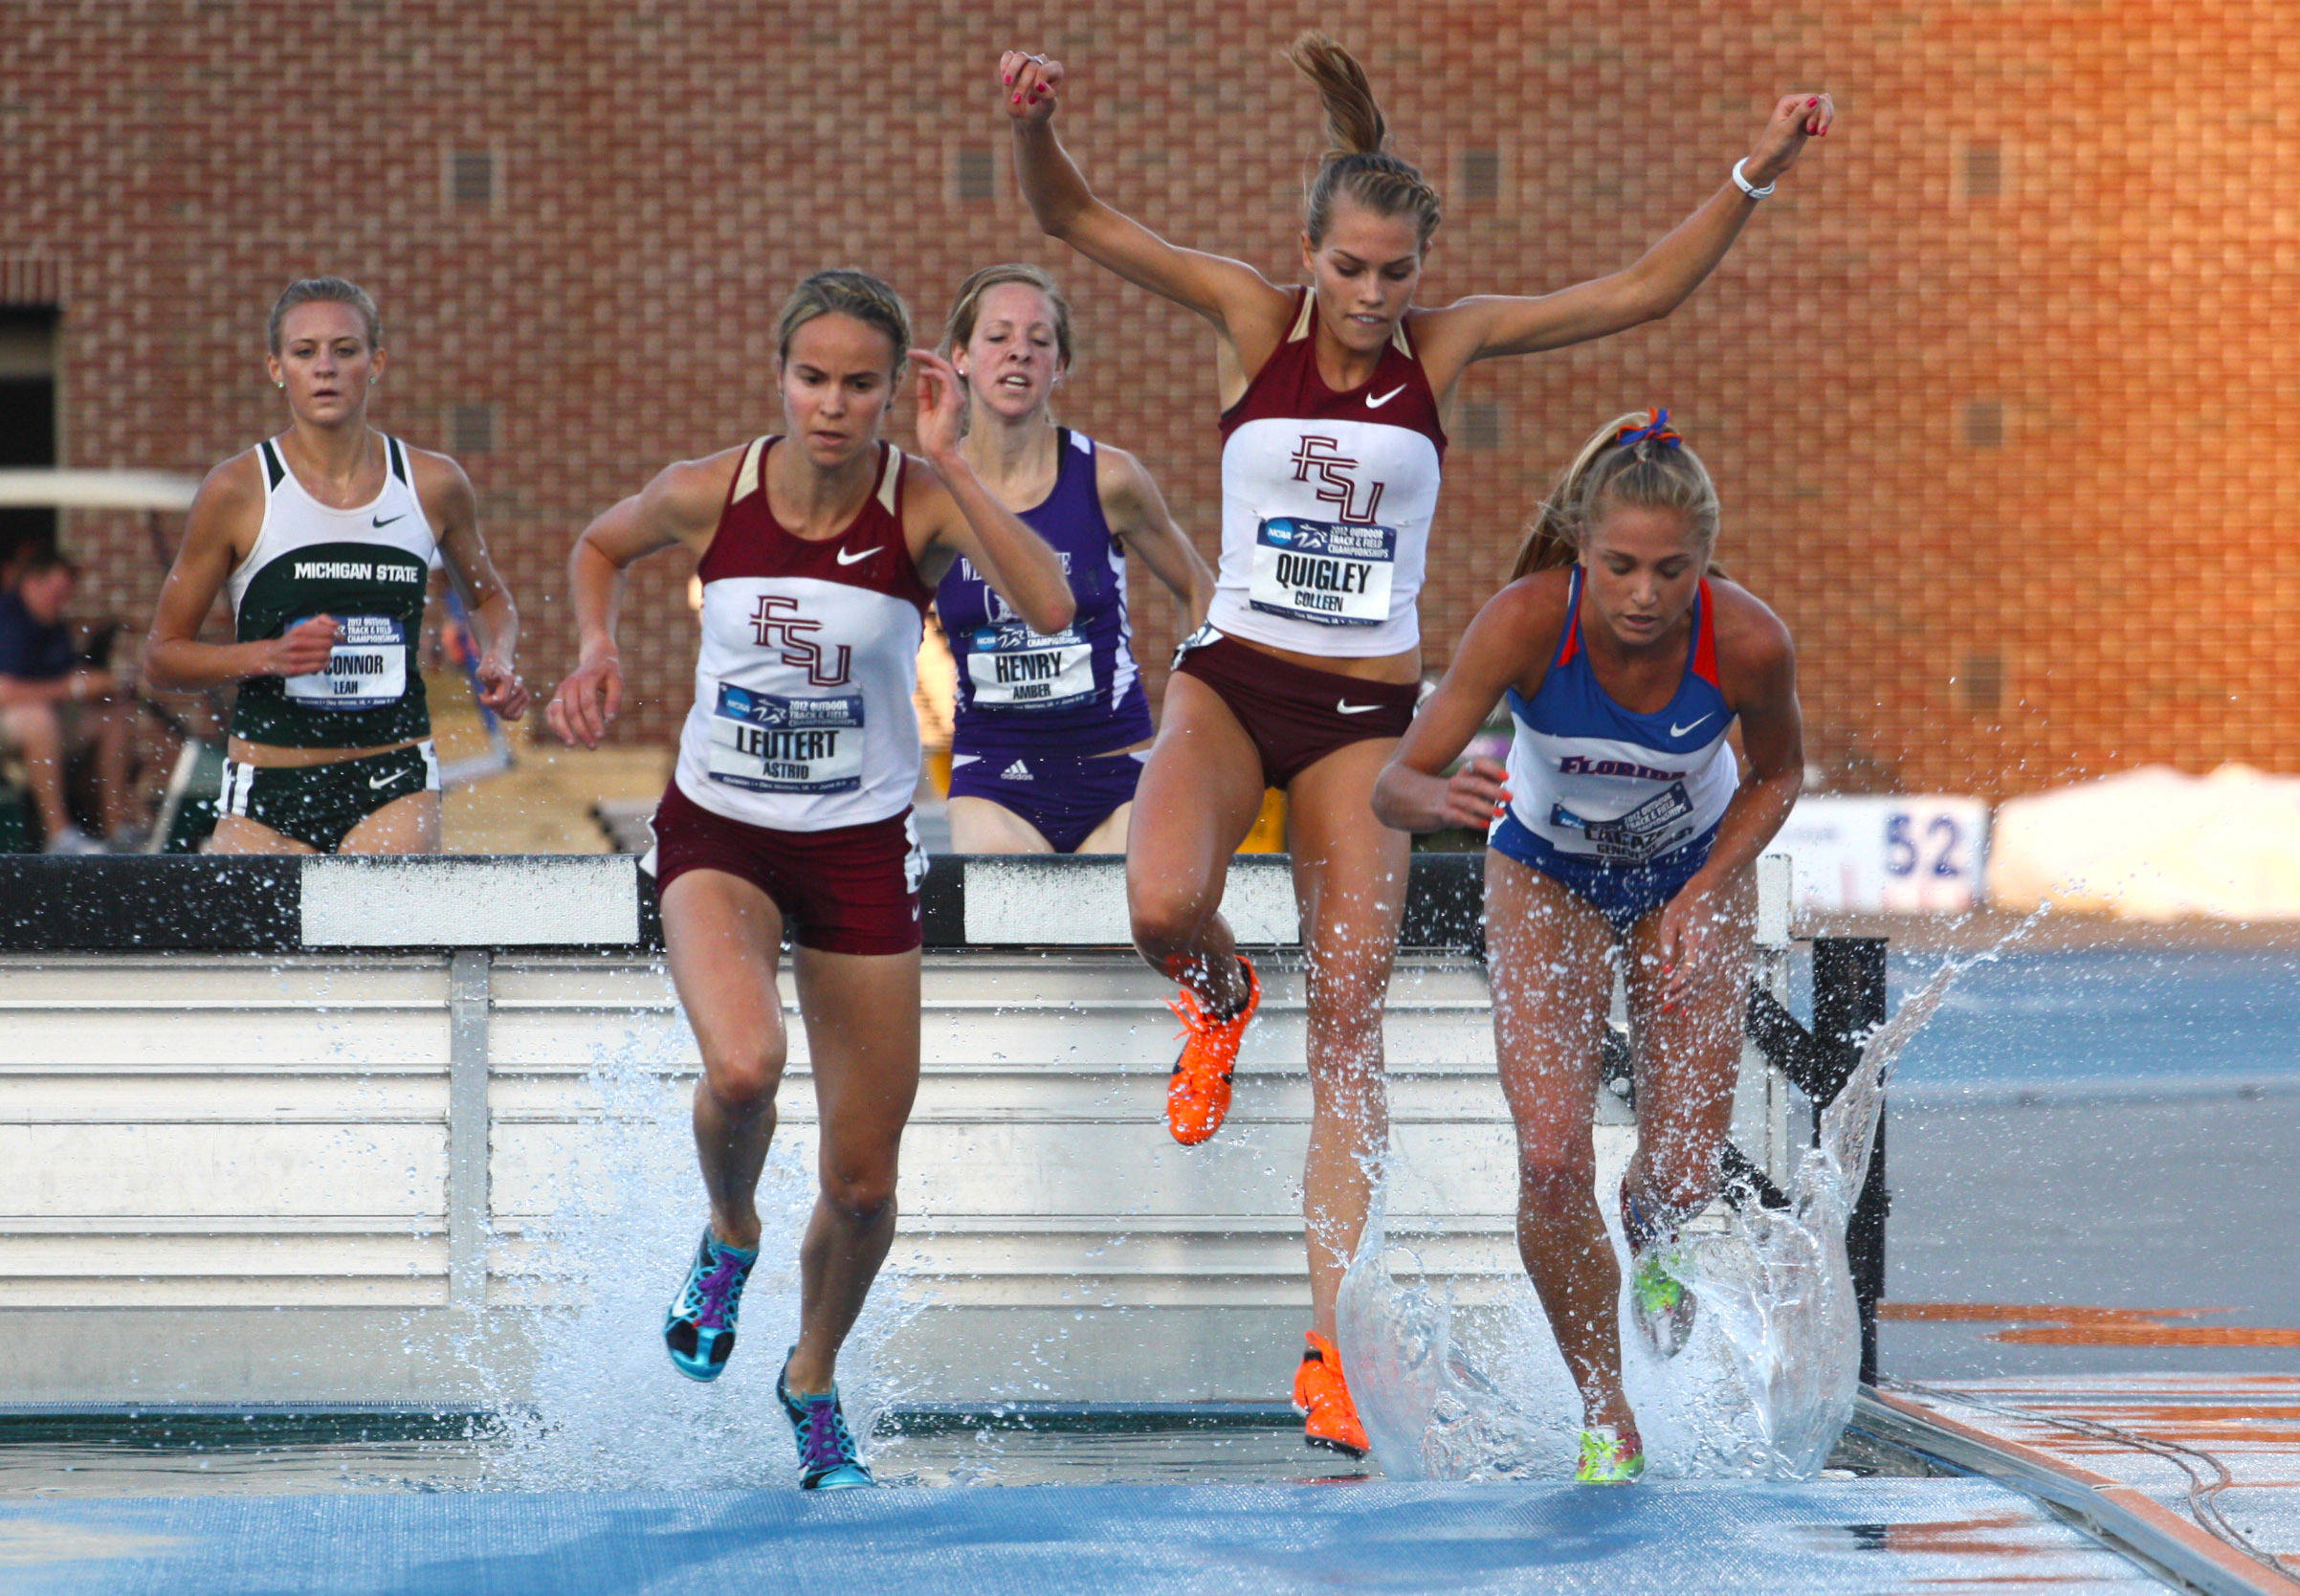 Astrid Leutert leads the way with Colleen Quigley close behind in the late stages of the steeplechase